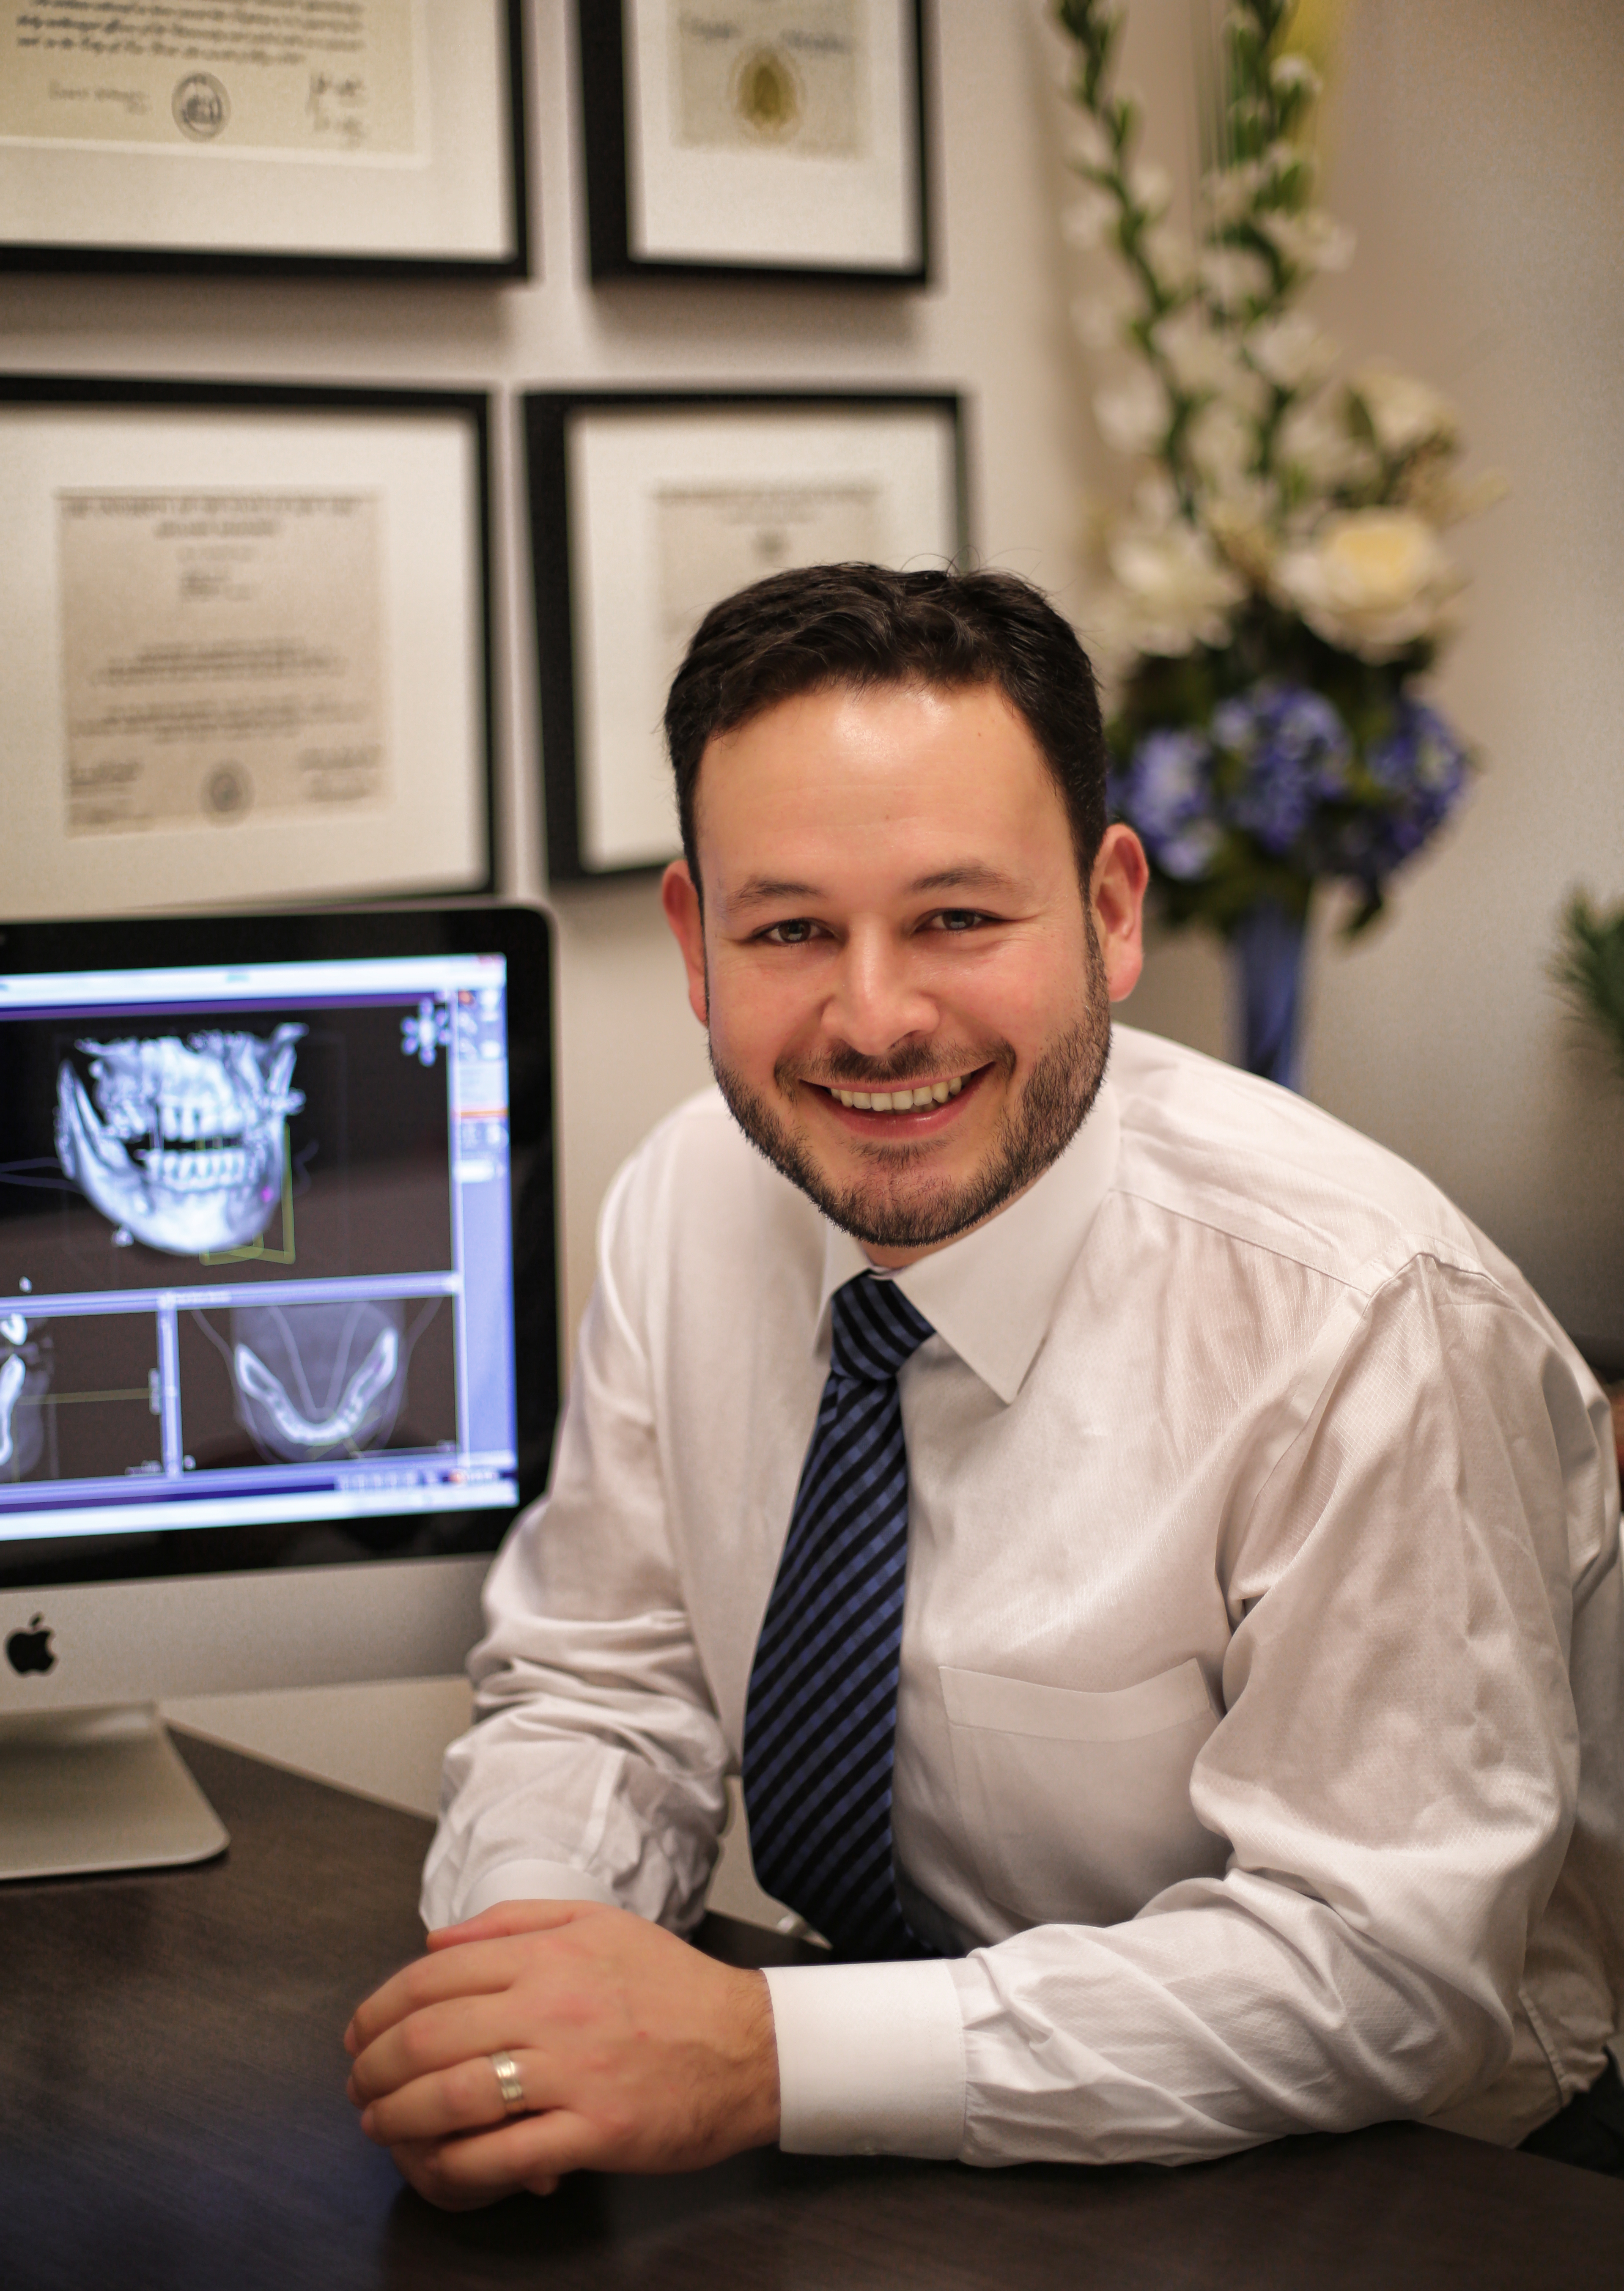 Carlos A. Castro DDS, FACP, Diplomate of the American Board of Prosthodontics